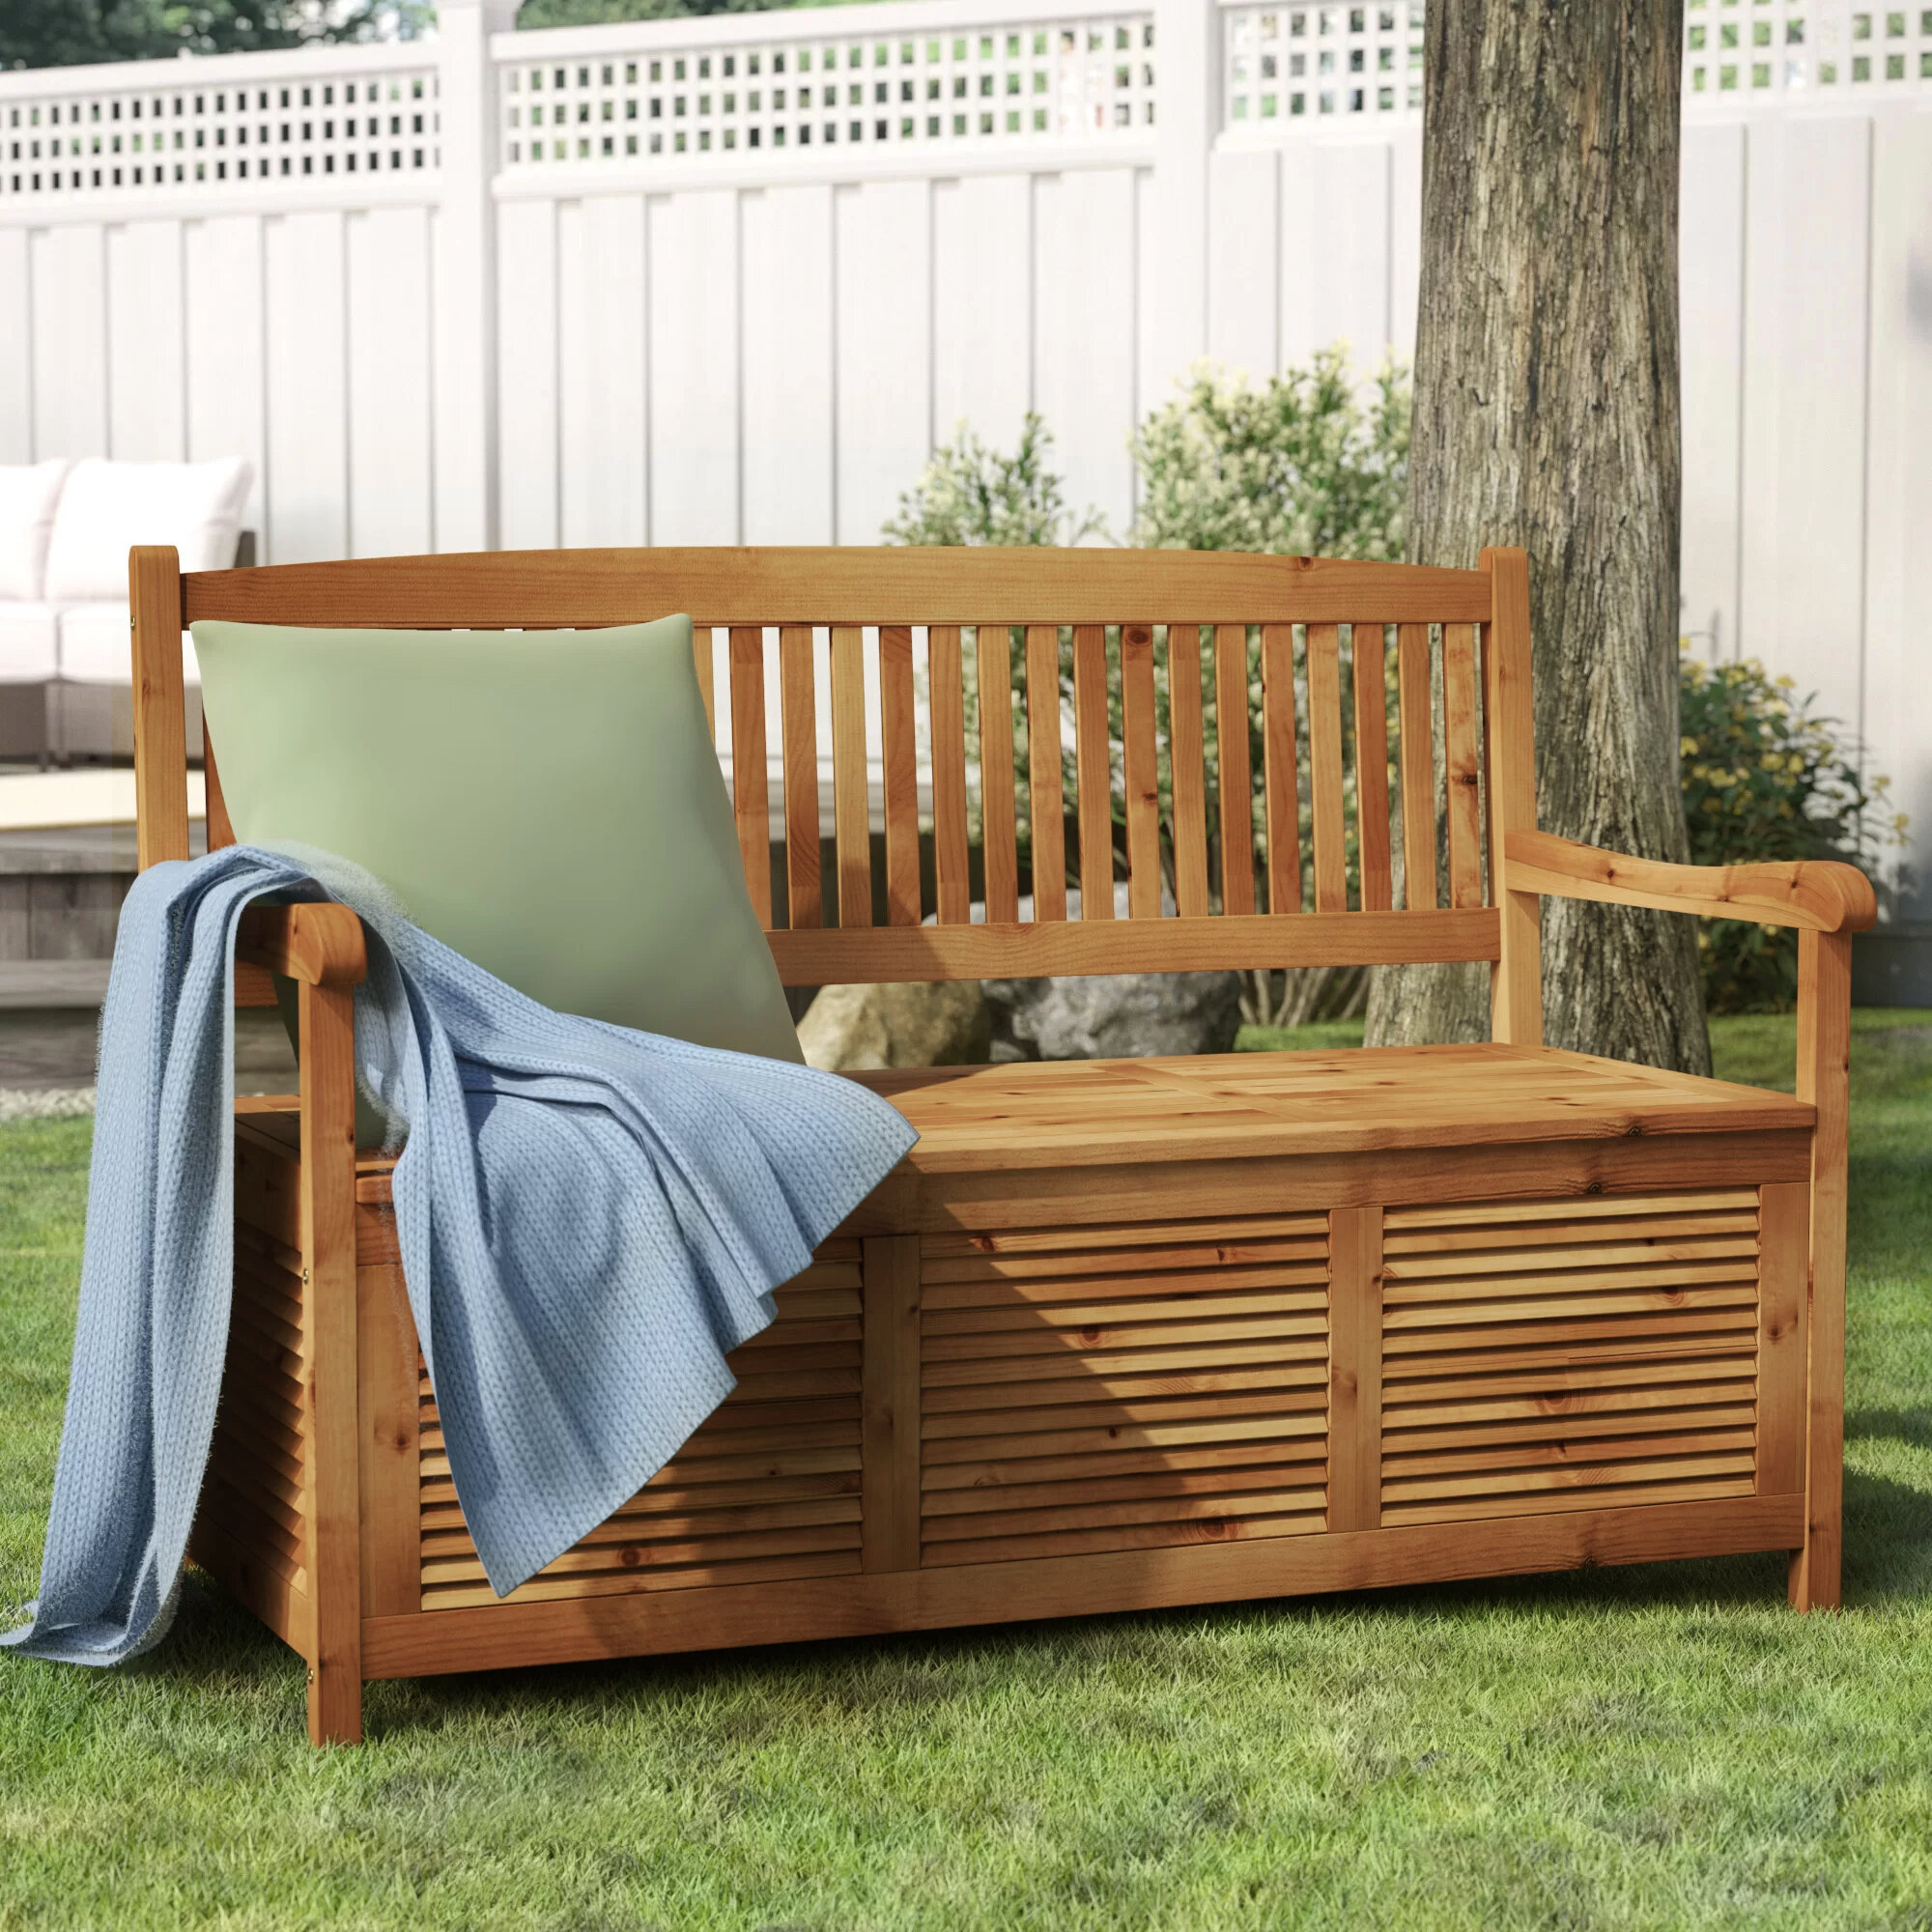 Zephyrine Patio Dining Wooden Picnic Bench Pertaining To Brecken Teak Garden Benches (Photo 9 of 25)